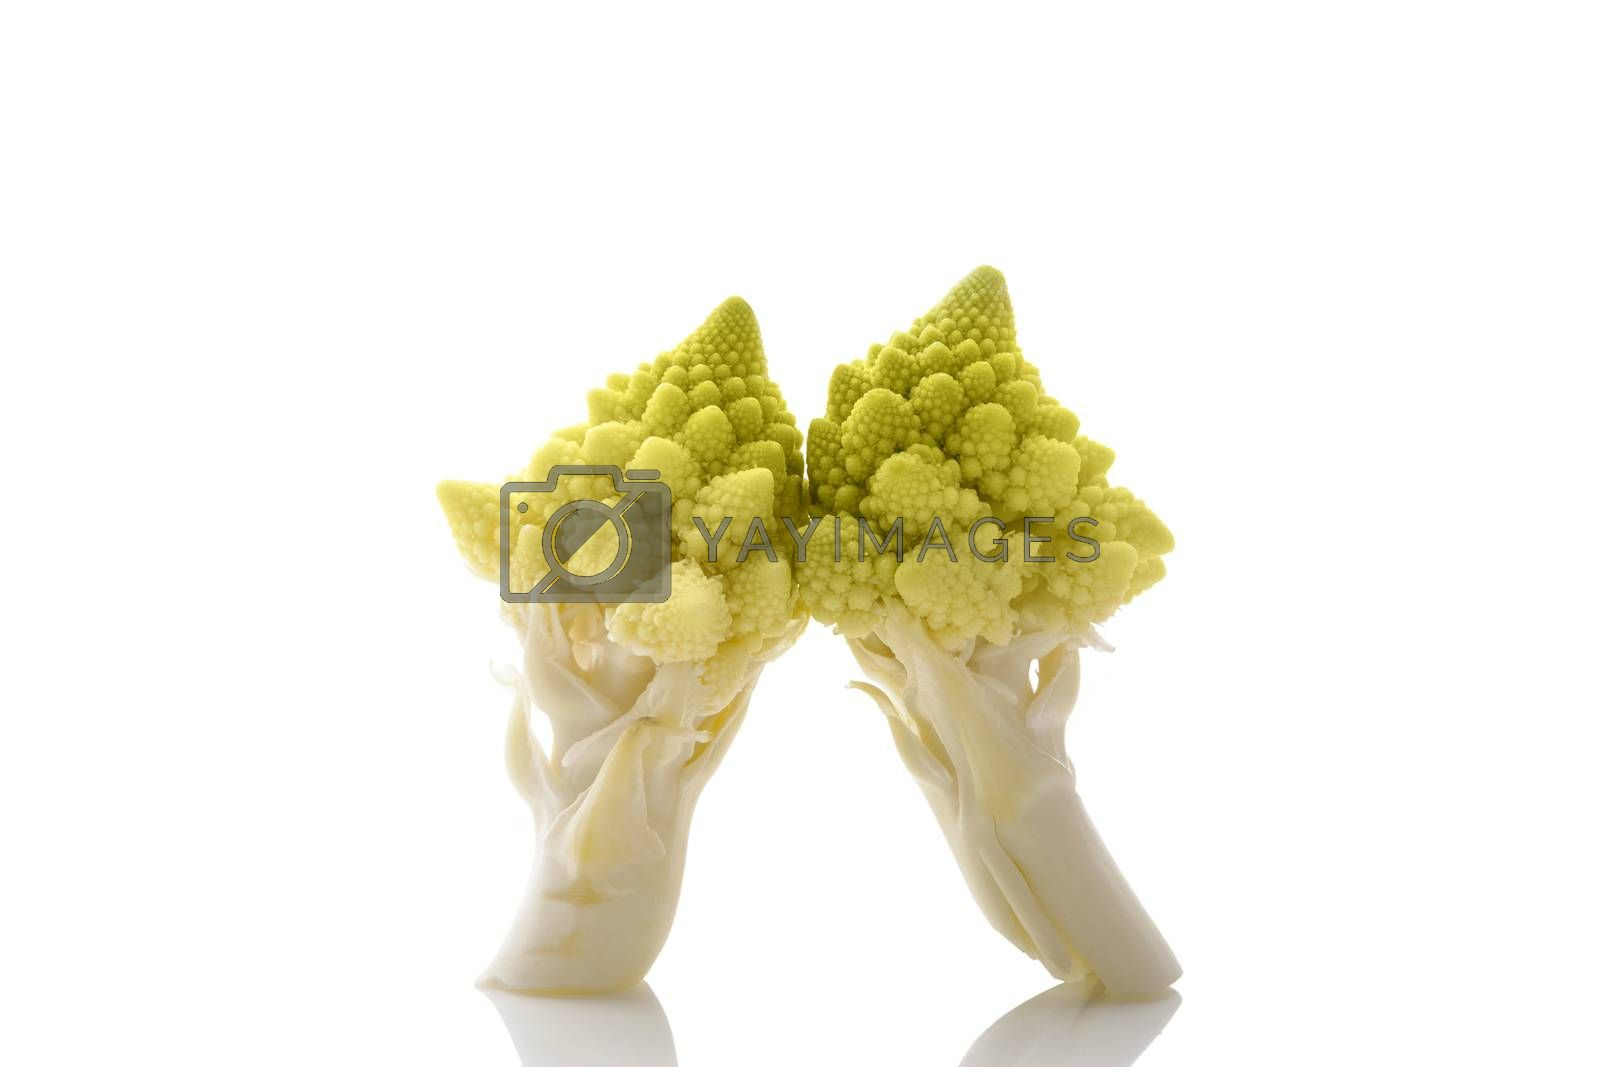 Romanesque cauliflower pieces isolated on white background with reflection. Healthy raw food diet.